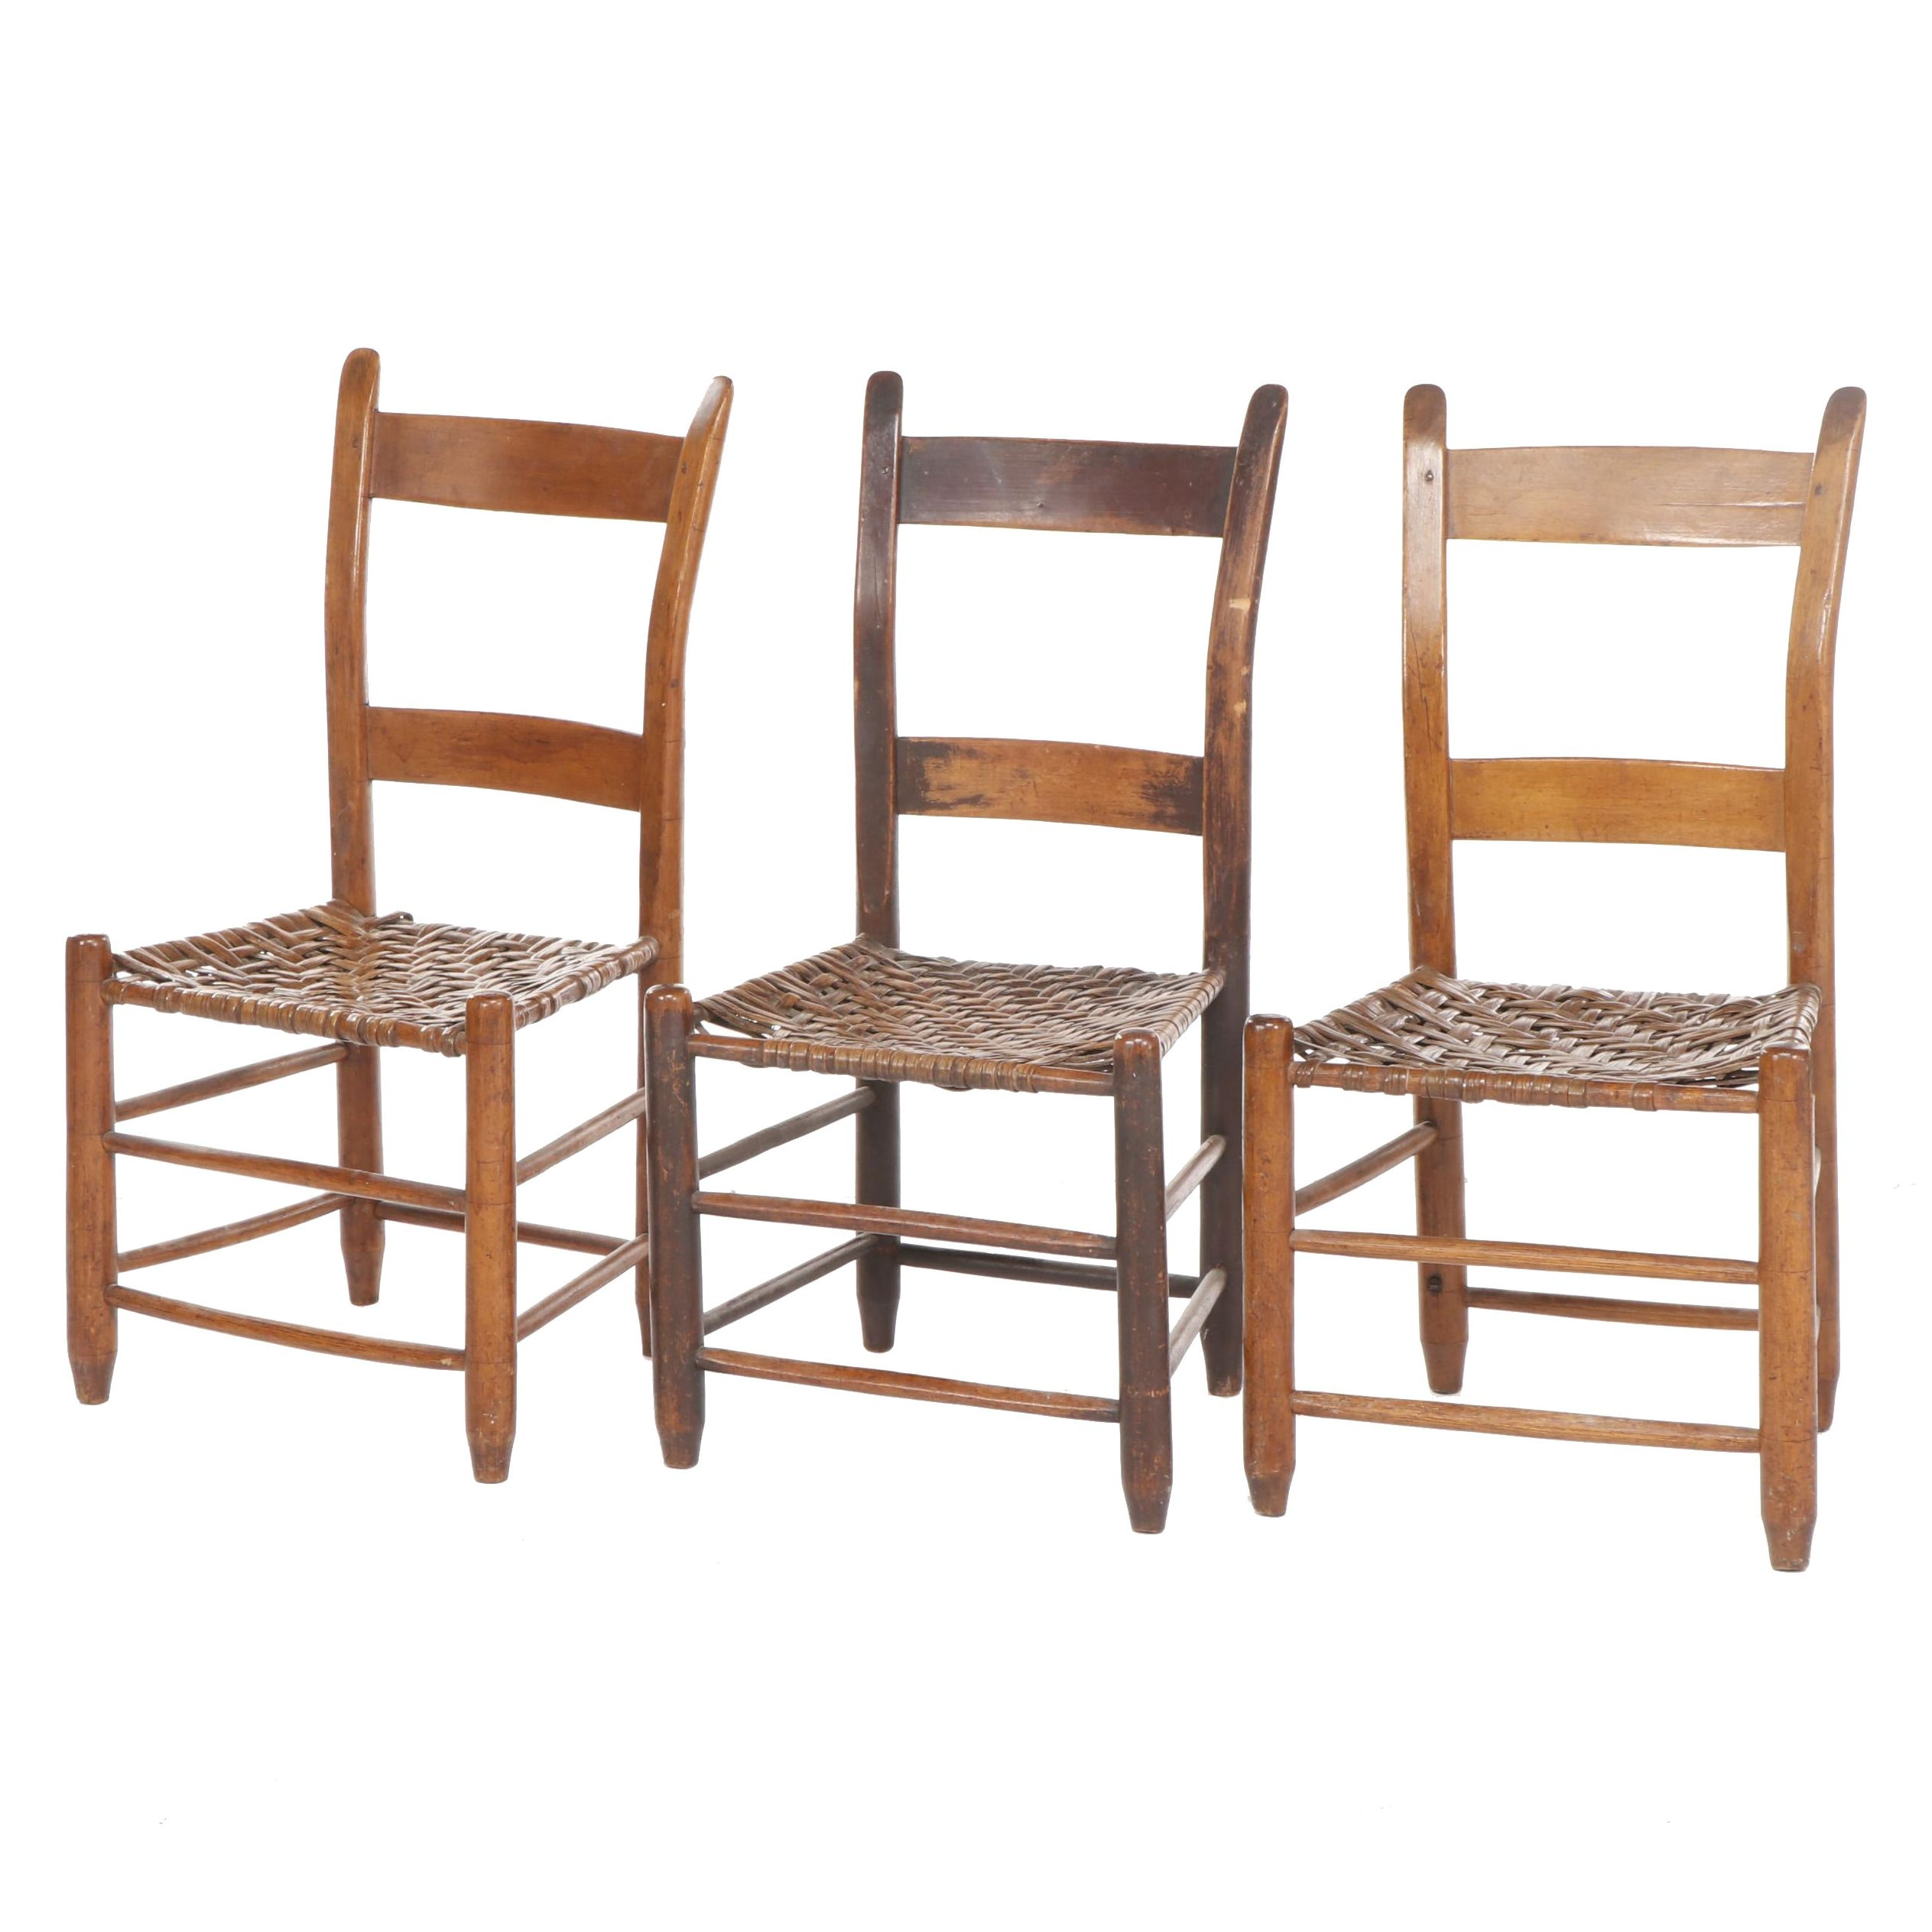 Three American Primitive Wooden Side Chairs with Woven Splint Seats, Mid-19th C